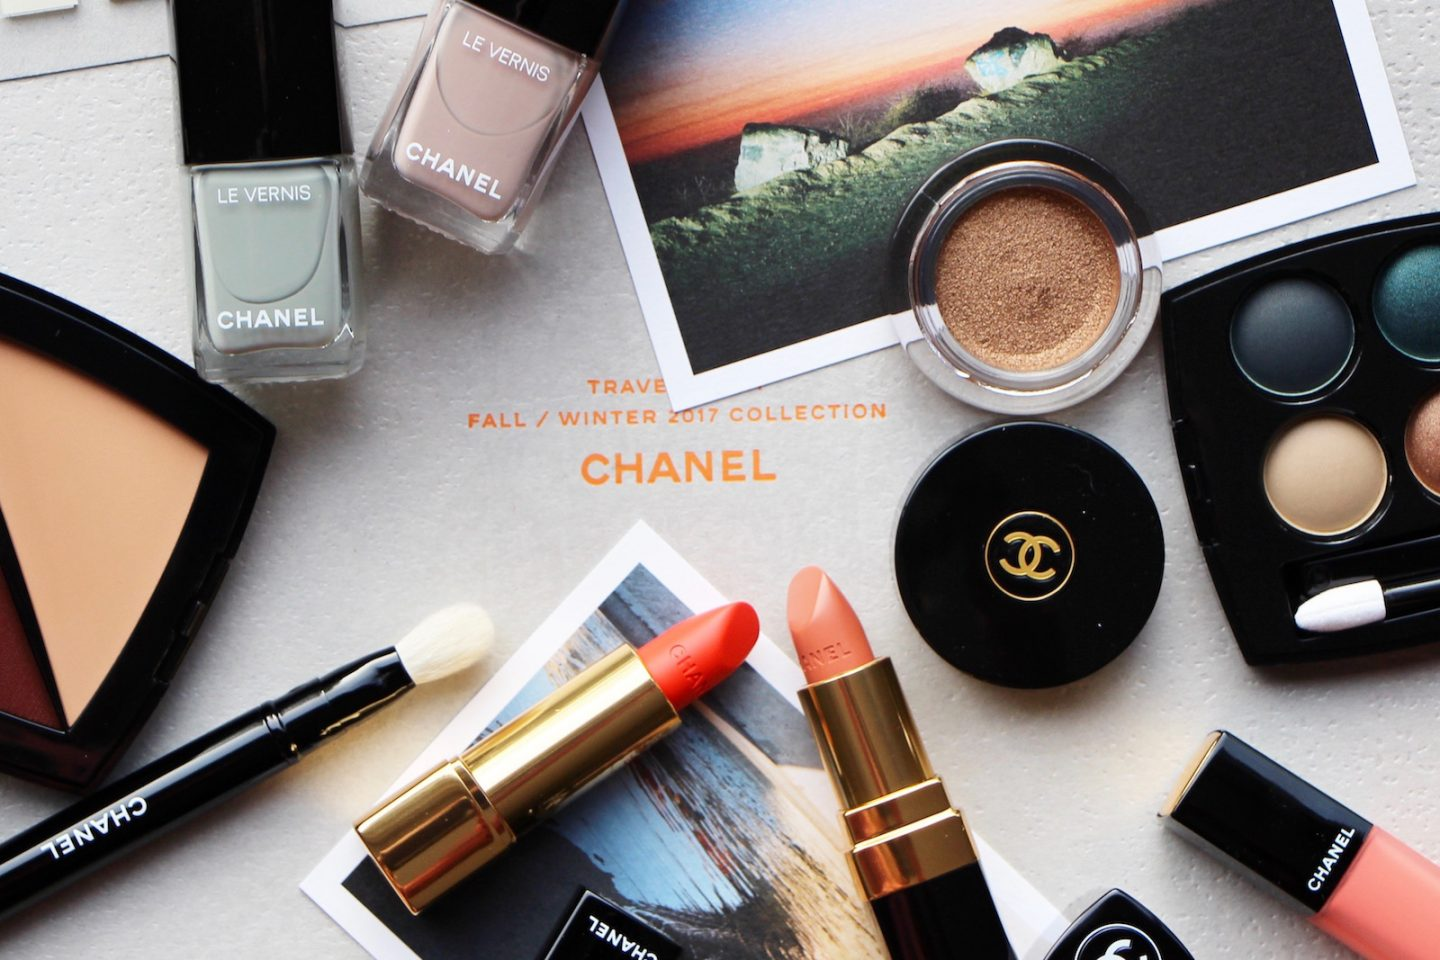 Chanel AW17 Makeup Collection Travel Diary